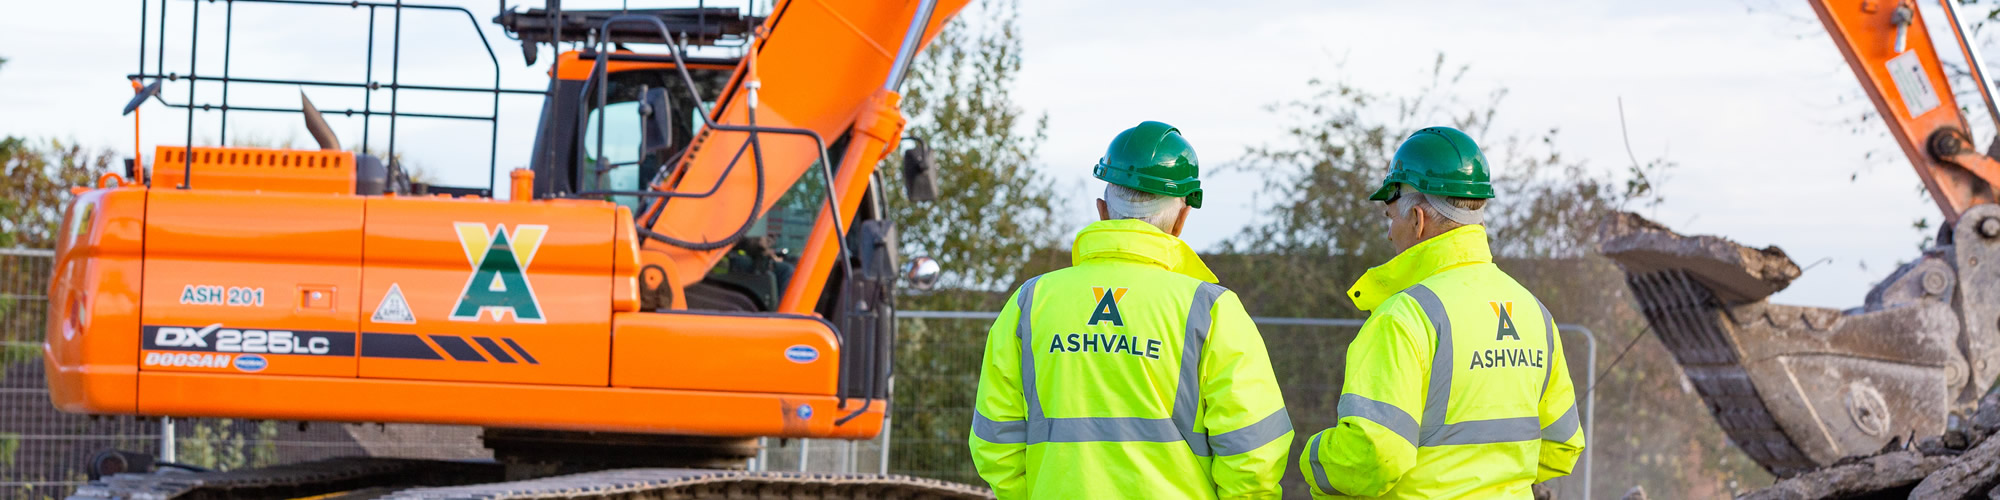 Ashvale Civil Engineering